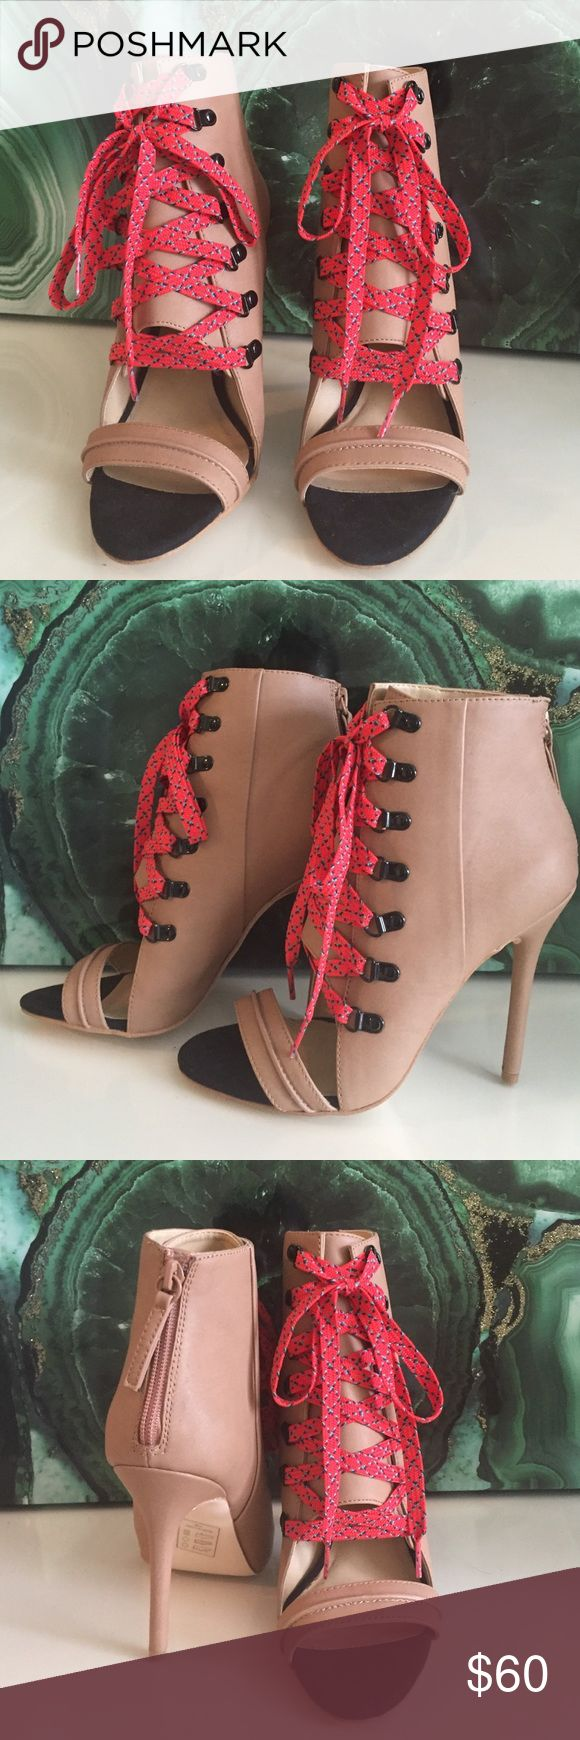 GX by Gwen Staffani Heels Nude Open Toed laced up booties with orangey-red laces. New, never worn, very comfortable. Very sexy and eye catching. I love these shoes so much but I never get to wear them! GX by Gwen Stefani Shoes Heels